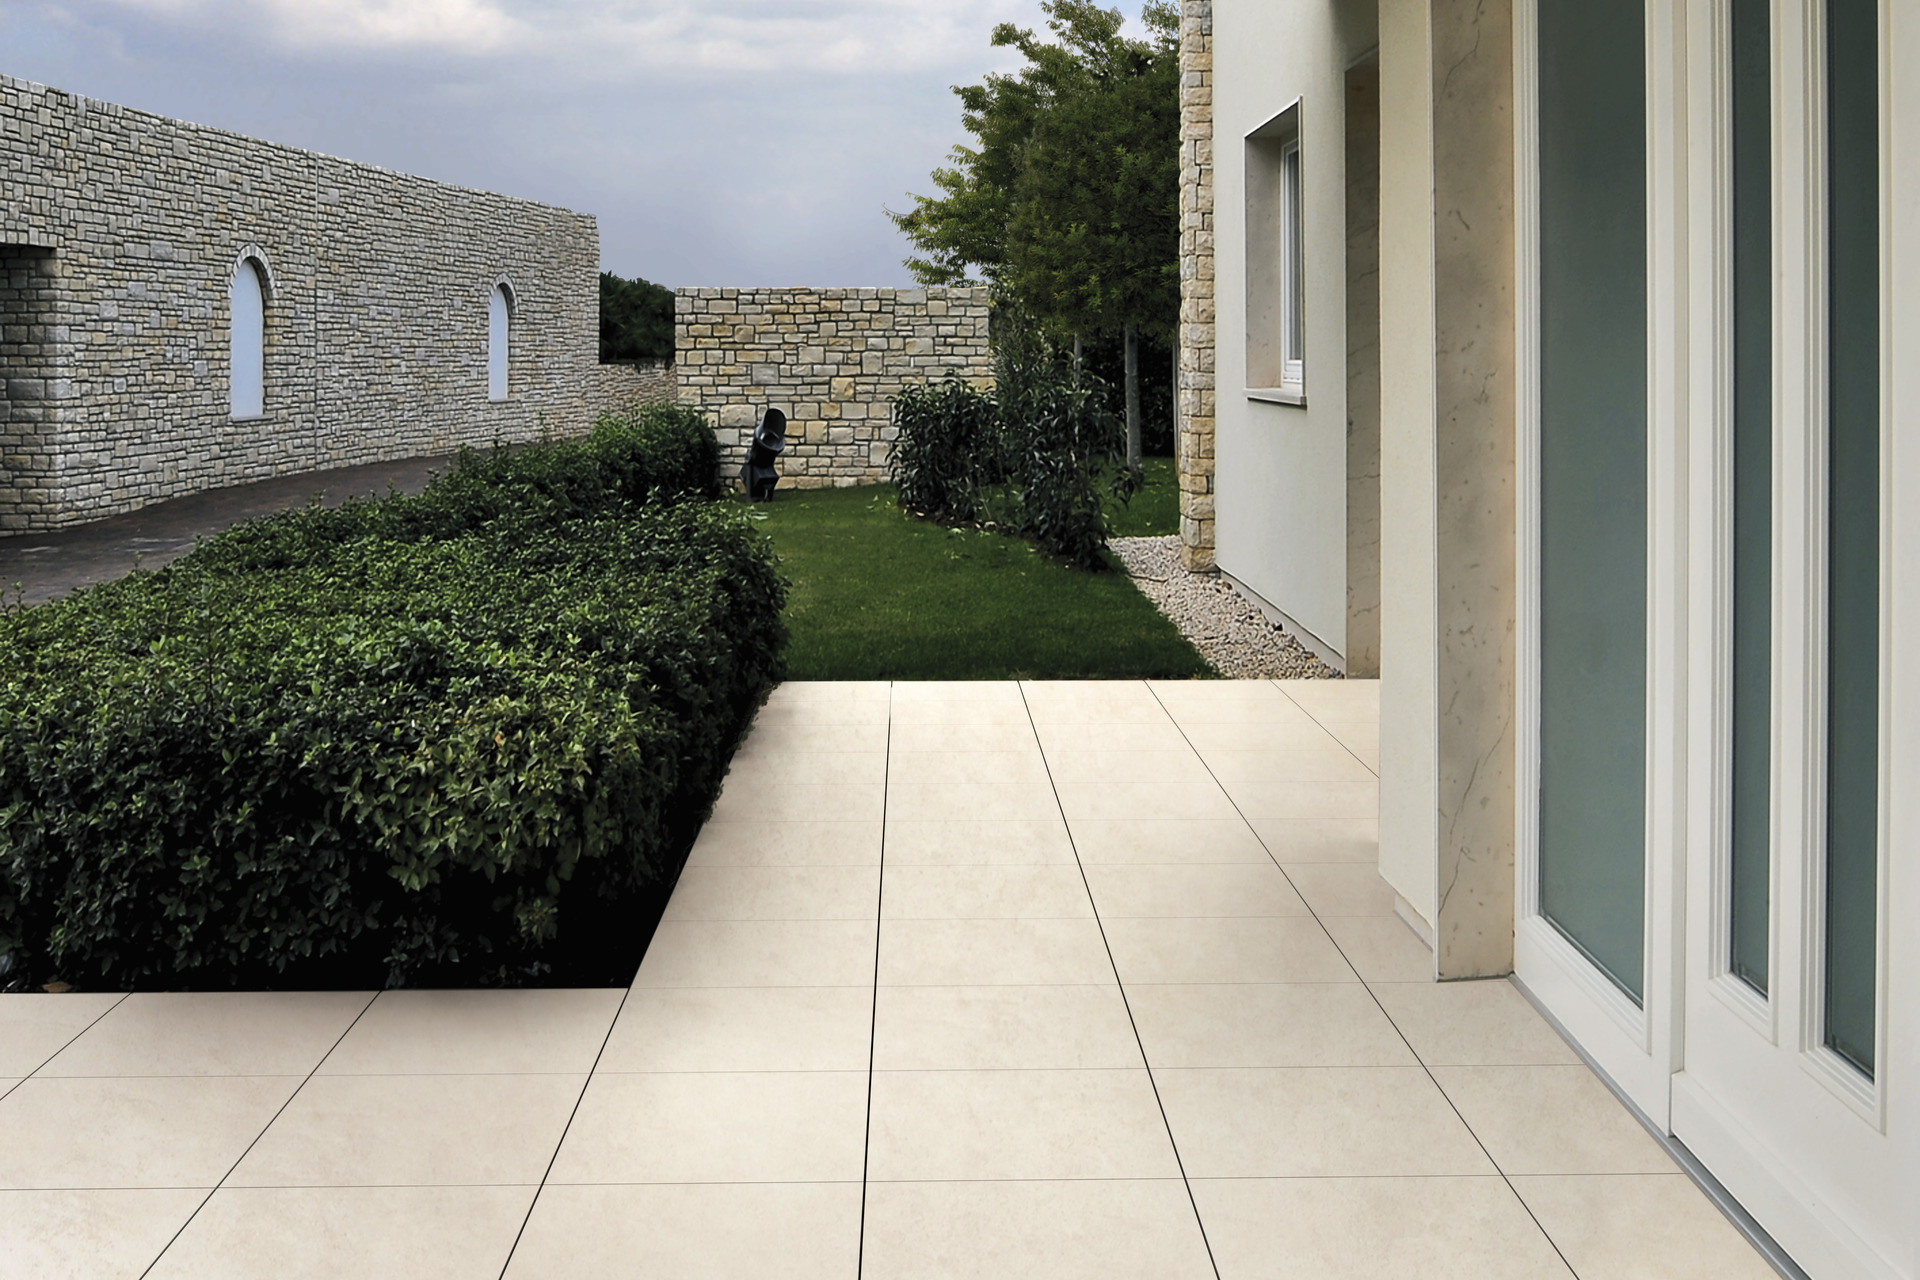 Stone Effect Porcelain Tiles - Cm2 Pietre Naturali High-Tech